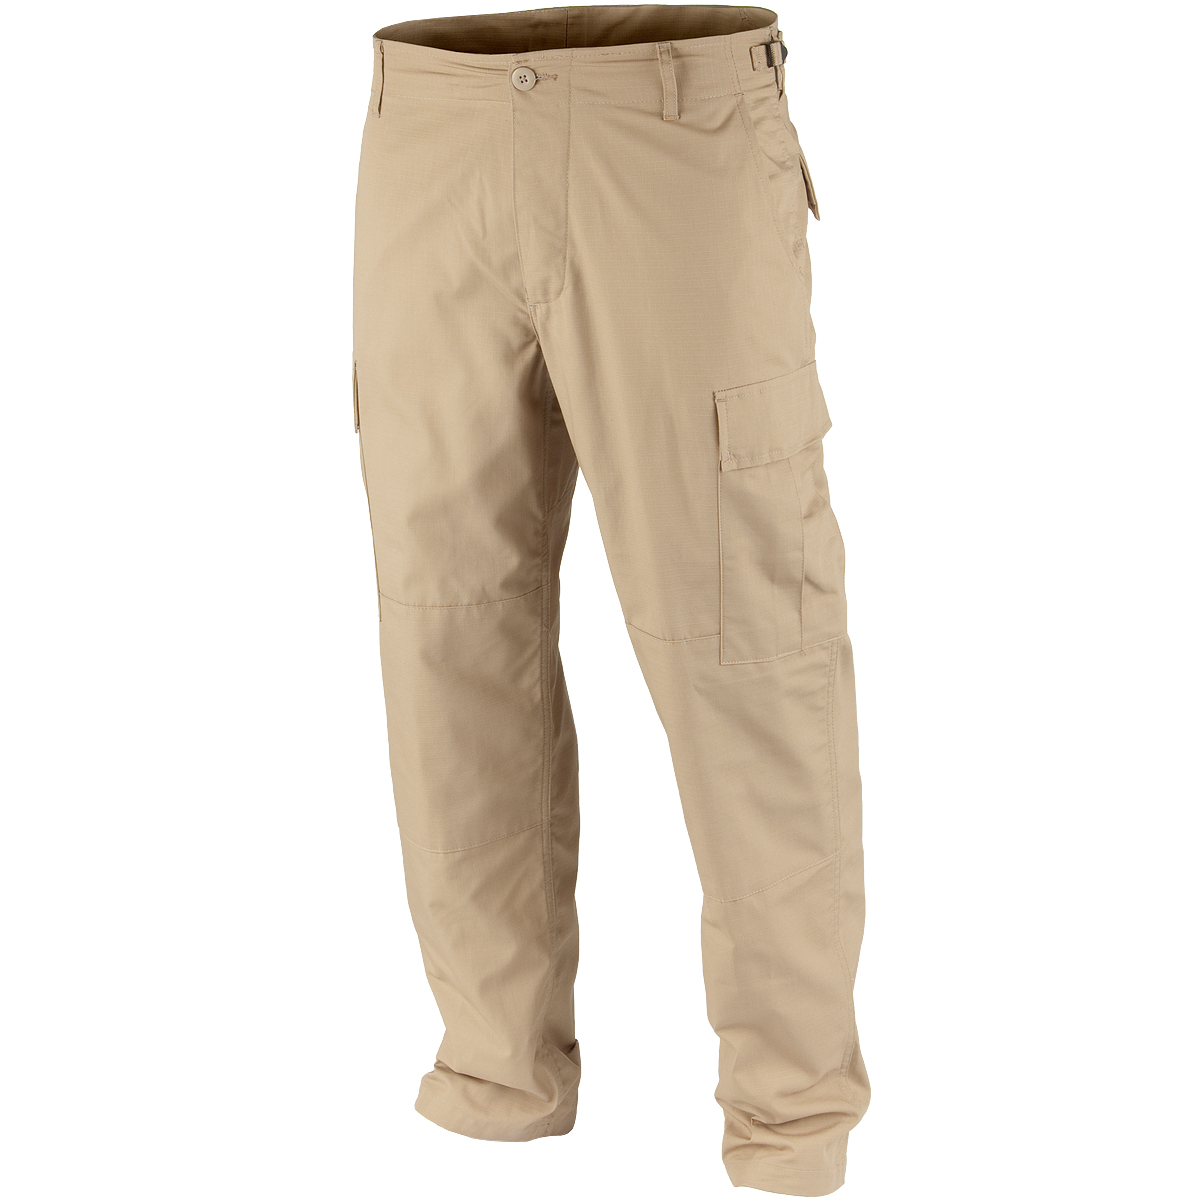 mens khaki uniform pants - Pi Pants